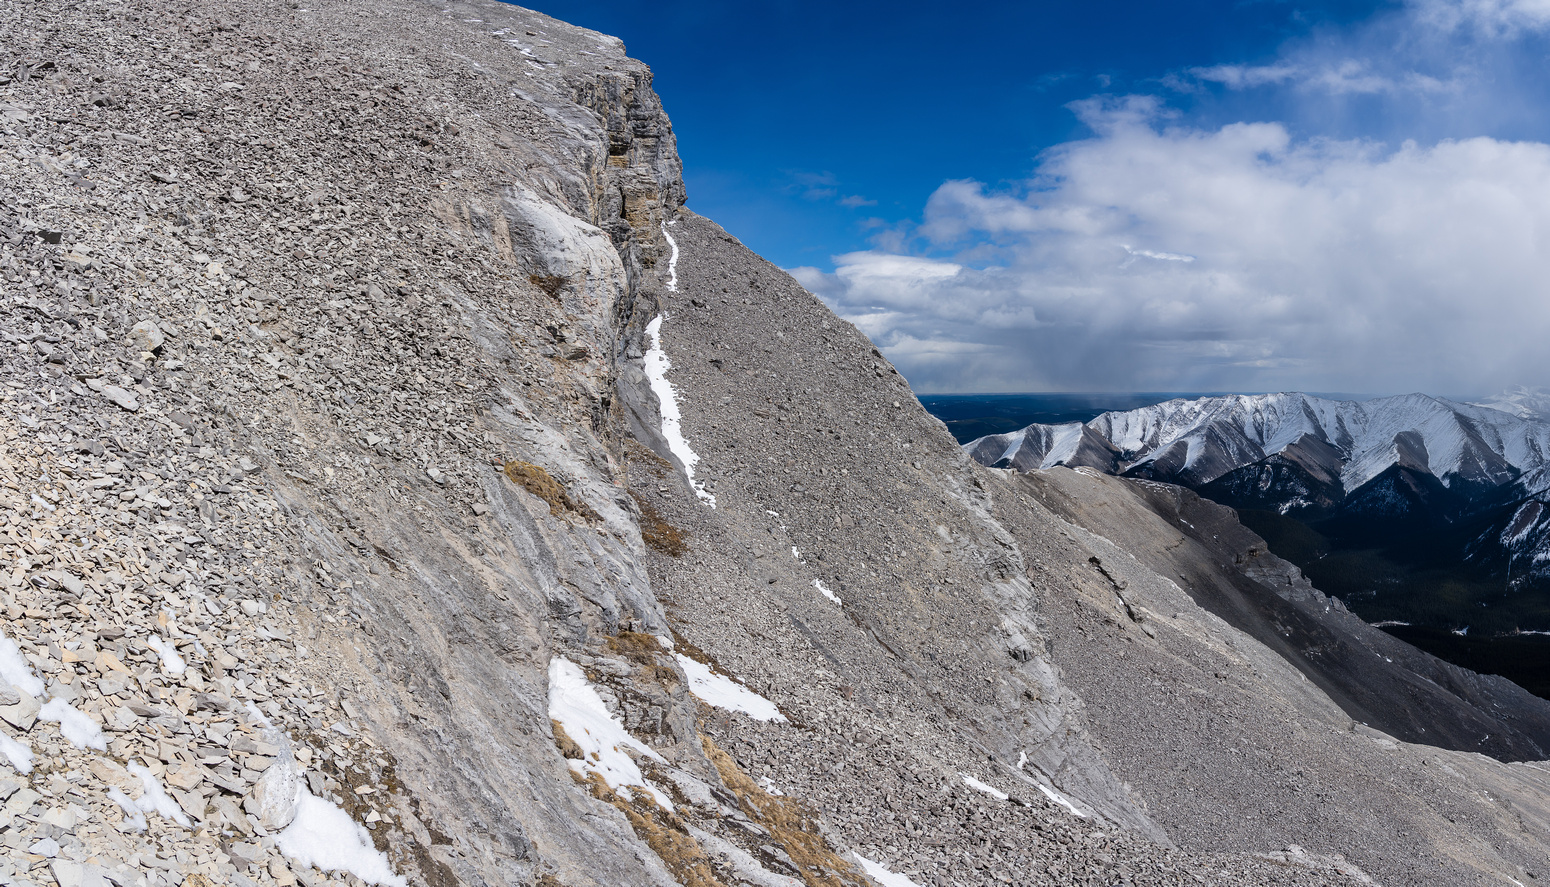 Time to get back onto (and then up!) our scree ledge to the SE ridge.